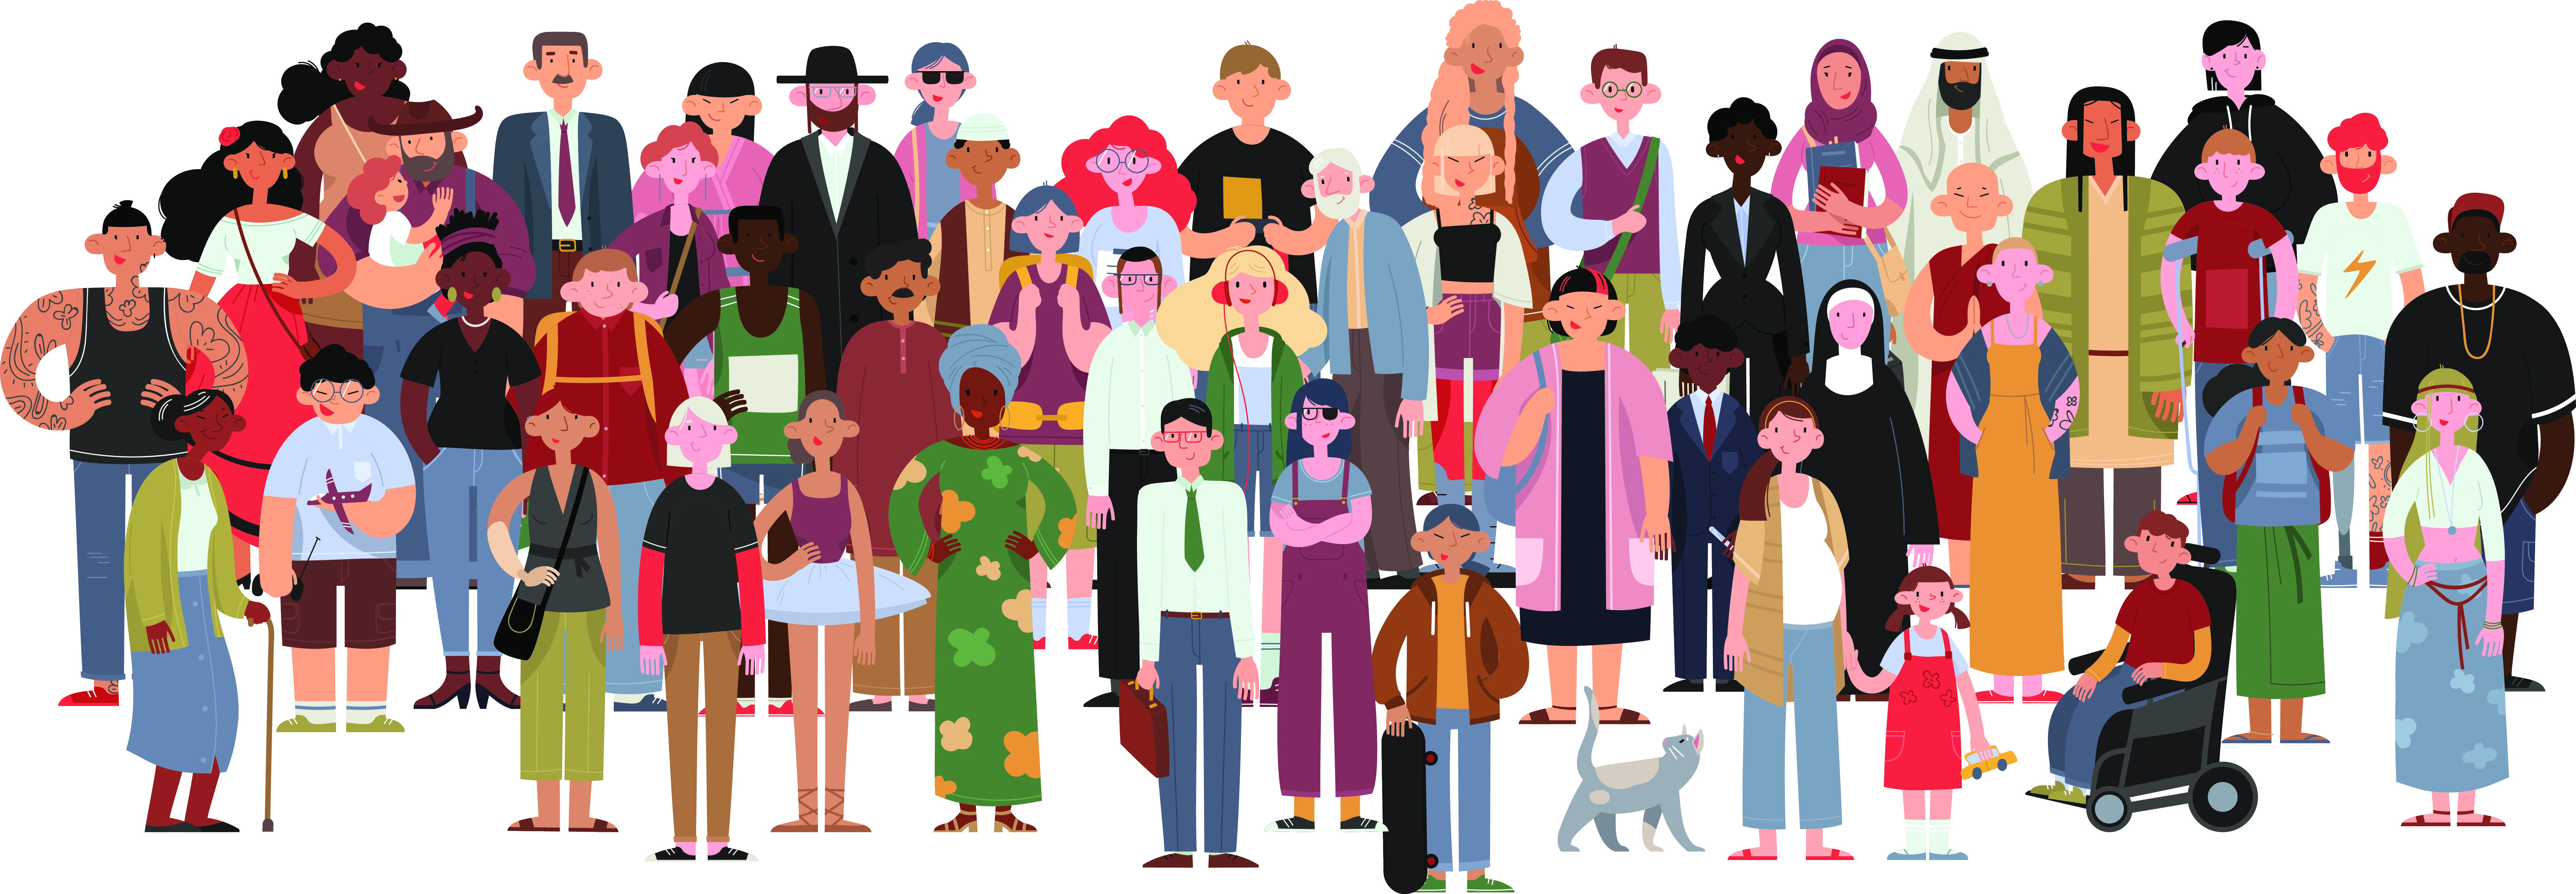 Illustration of a diverse crowd of people.